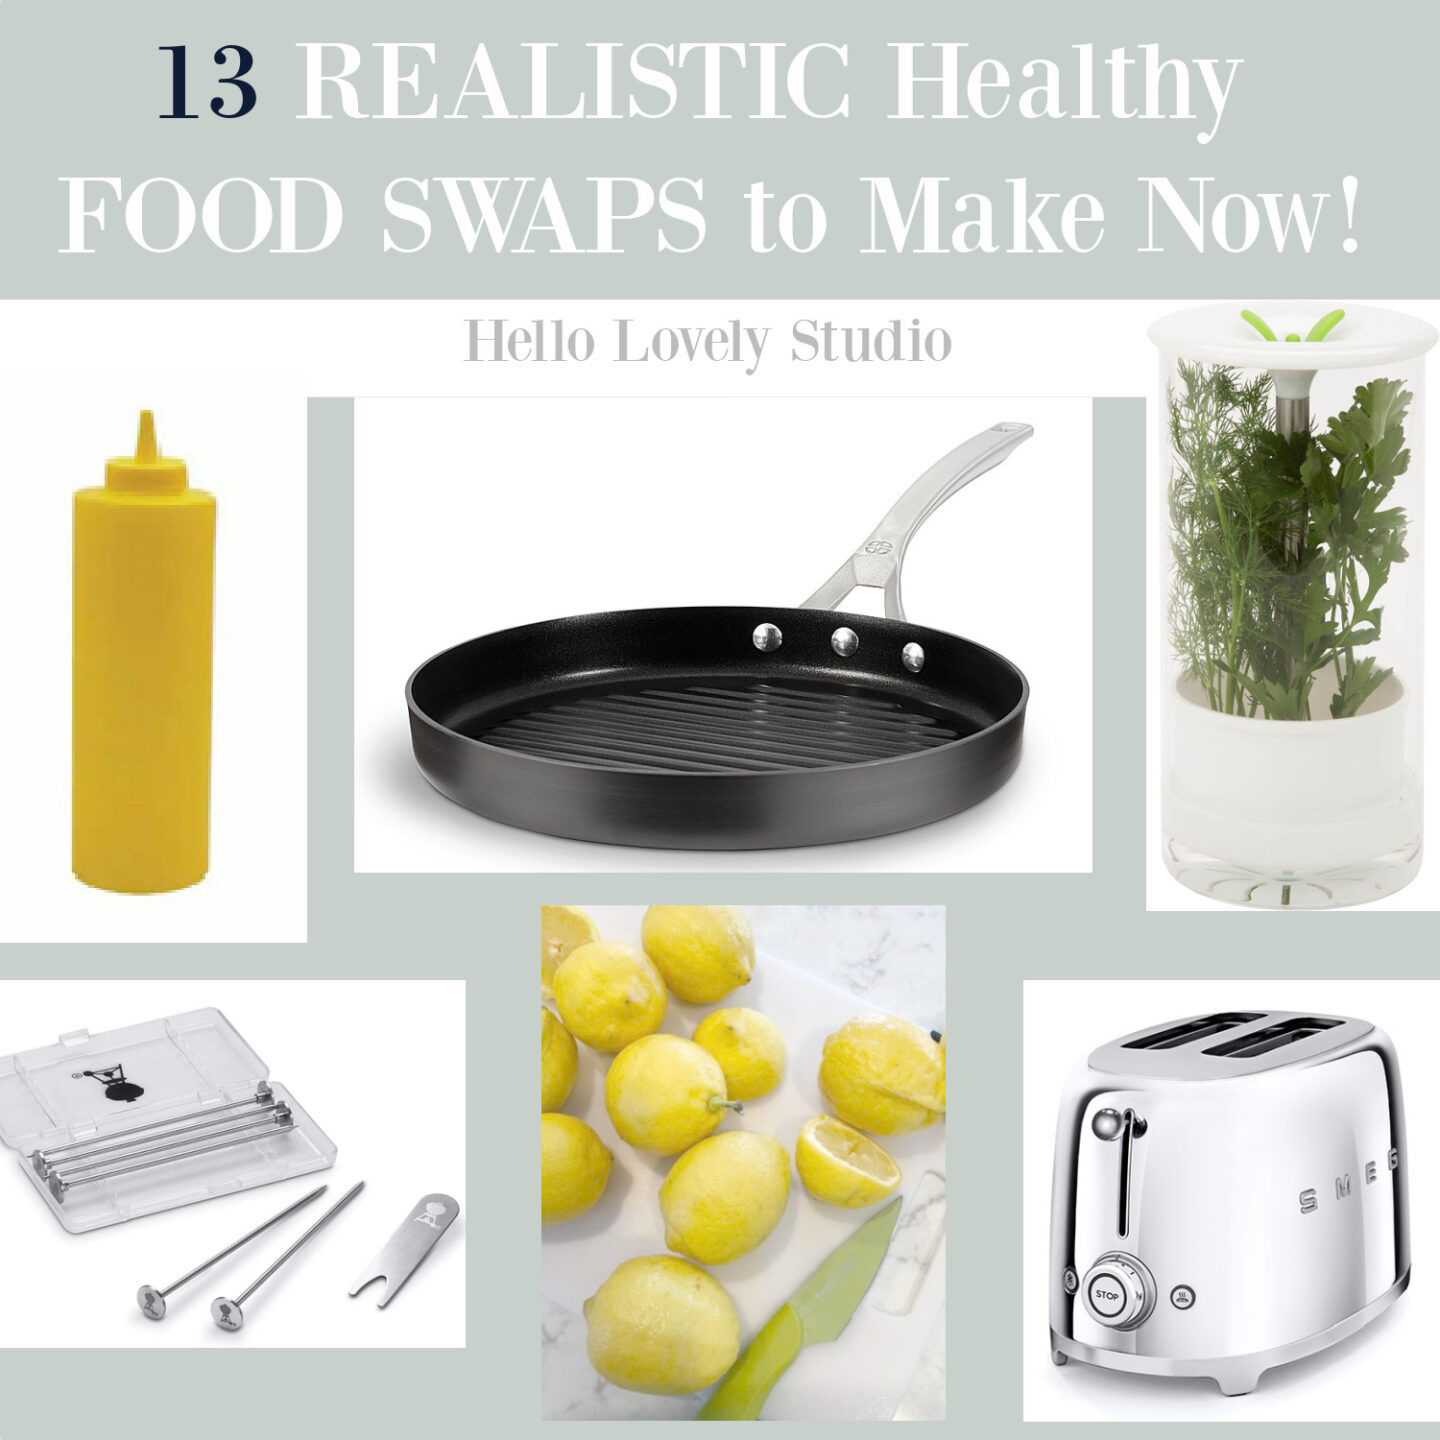 13 Realistic healthy food swaps to make now - come explore these smart ideas for everyday healthier eating - Hello Lovely.